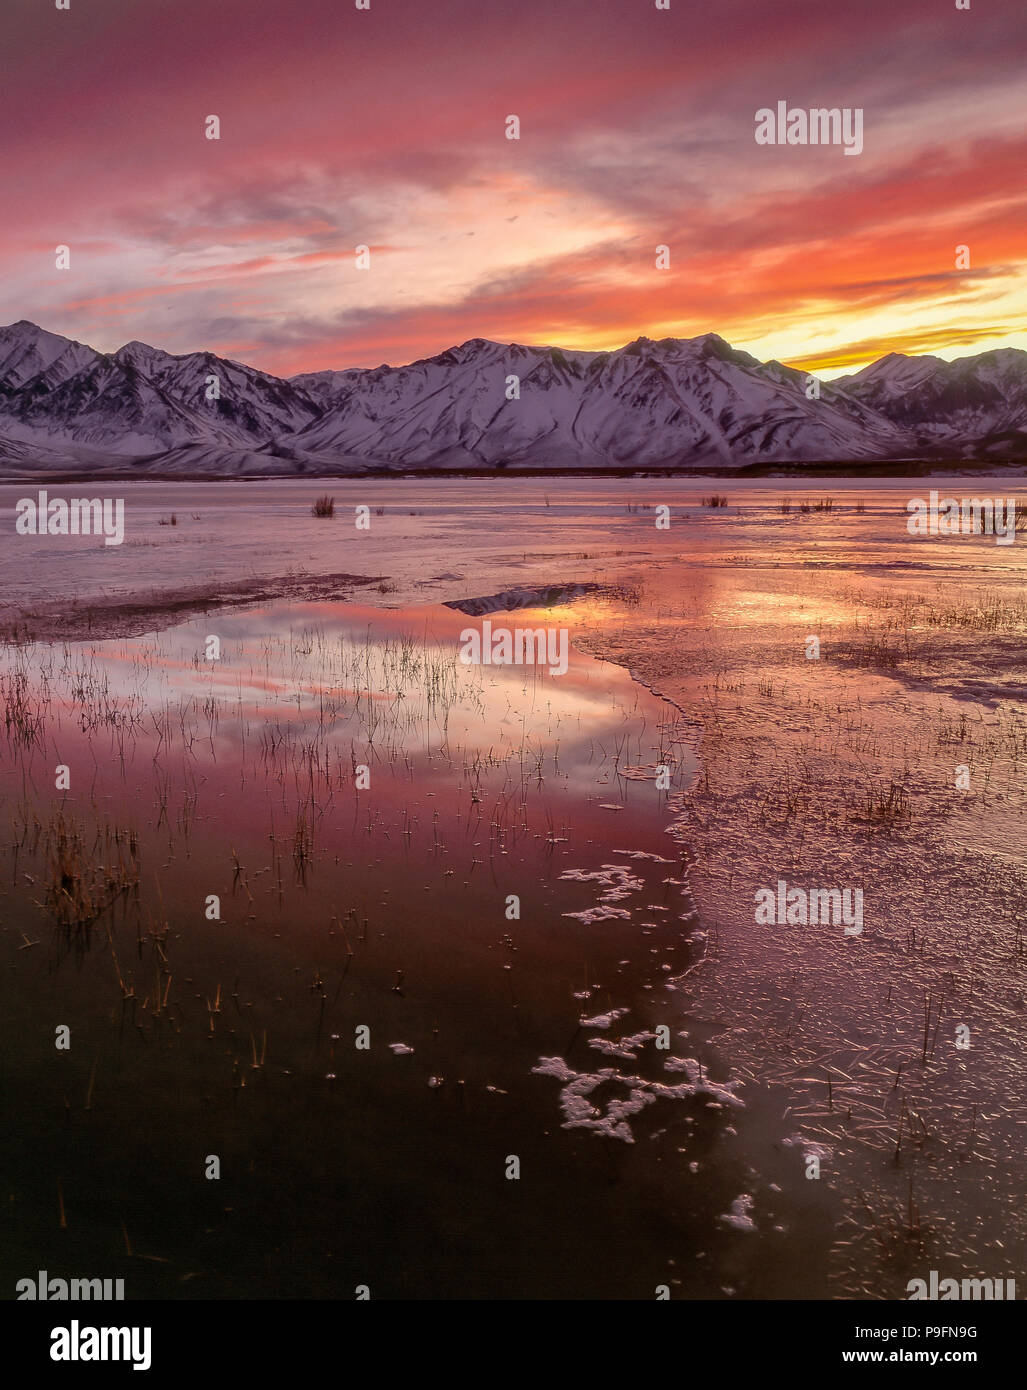 Tramonto, Crowley Lago, Inyo National Forest, Sierra orientale, California Immagini Stock